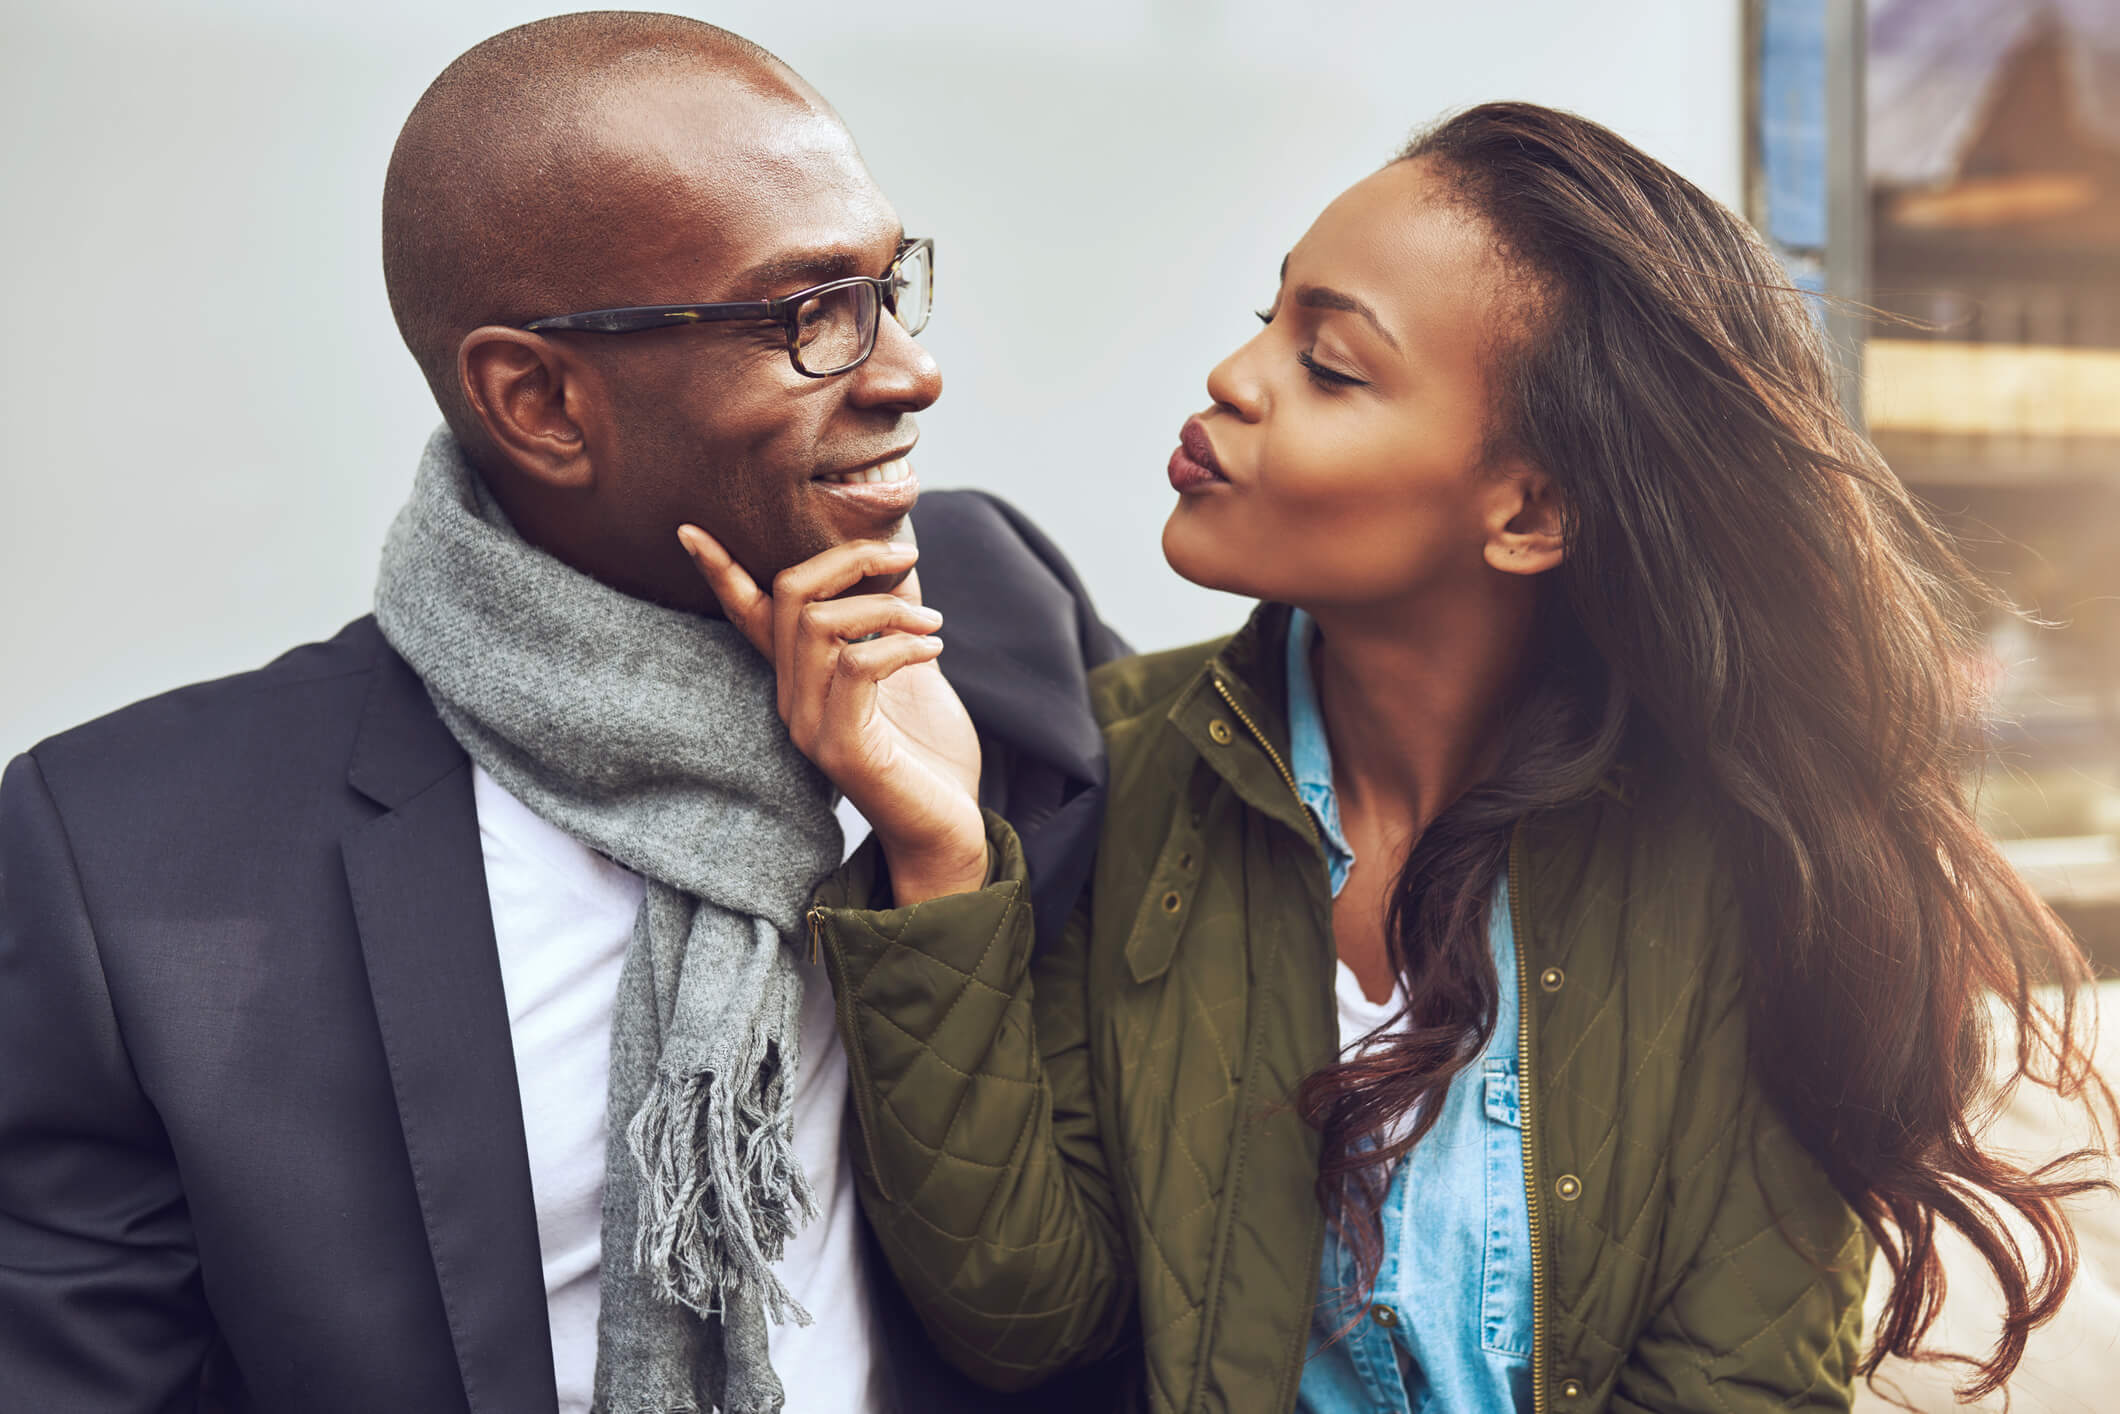 HOW TO MAKE YOUR MAN FEEL LOVED